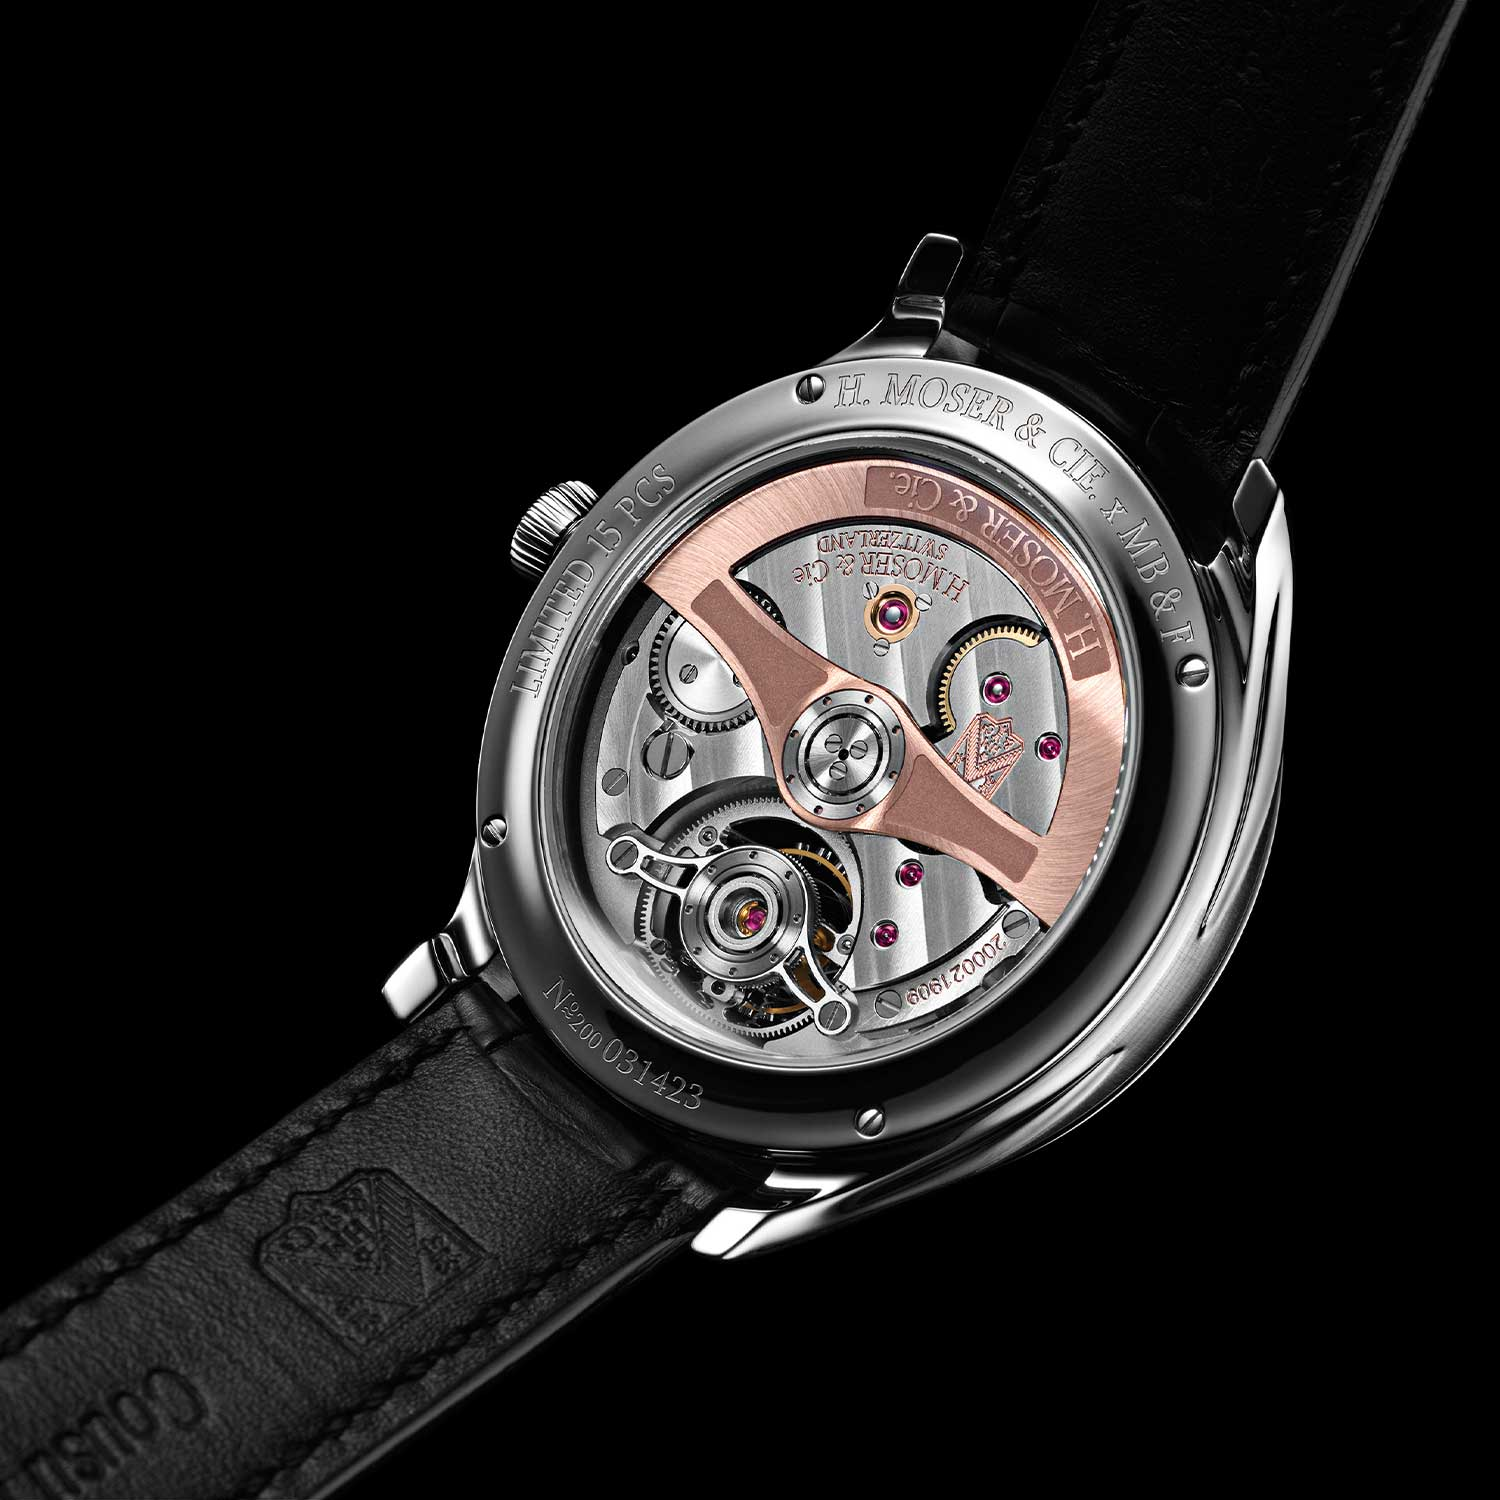 Caseback of the MB&F × H. Moser Endeavour Cylindrical Tourbillon